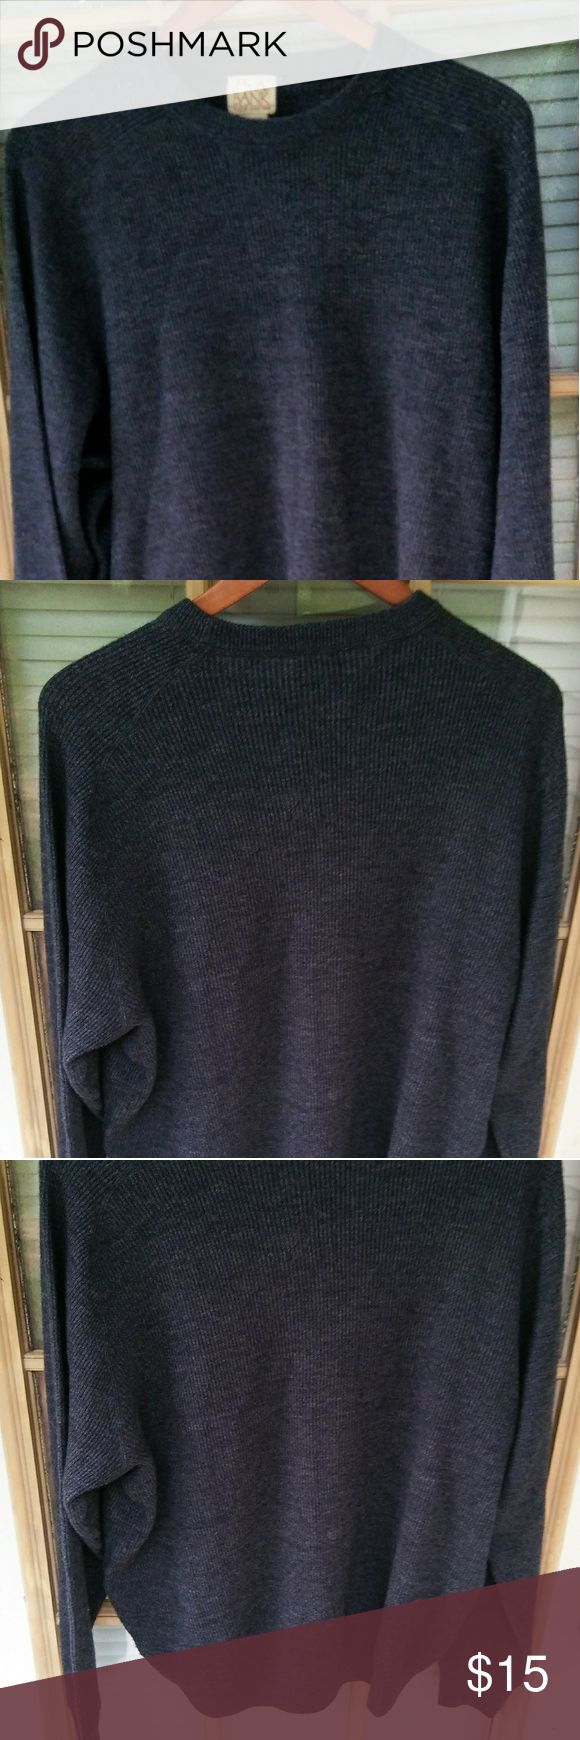 "JOS A BANK MENS CREWNECK SWEATER GRAY WOOL XL JOS A BANK MENS CREWNECK SWEATER GRAY WOOL BLEND XL  Very nice, like new! Meaures: pit to pit 25"", sleeve 26"", length 27.5"". Joseph A Banks Sweaters Crewneck"